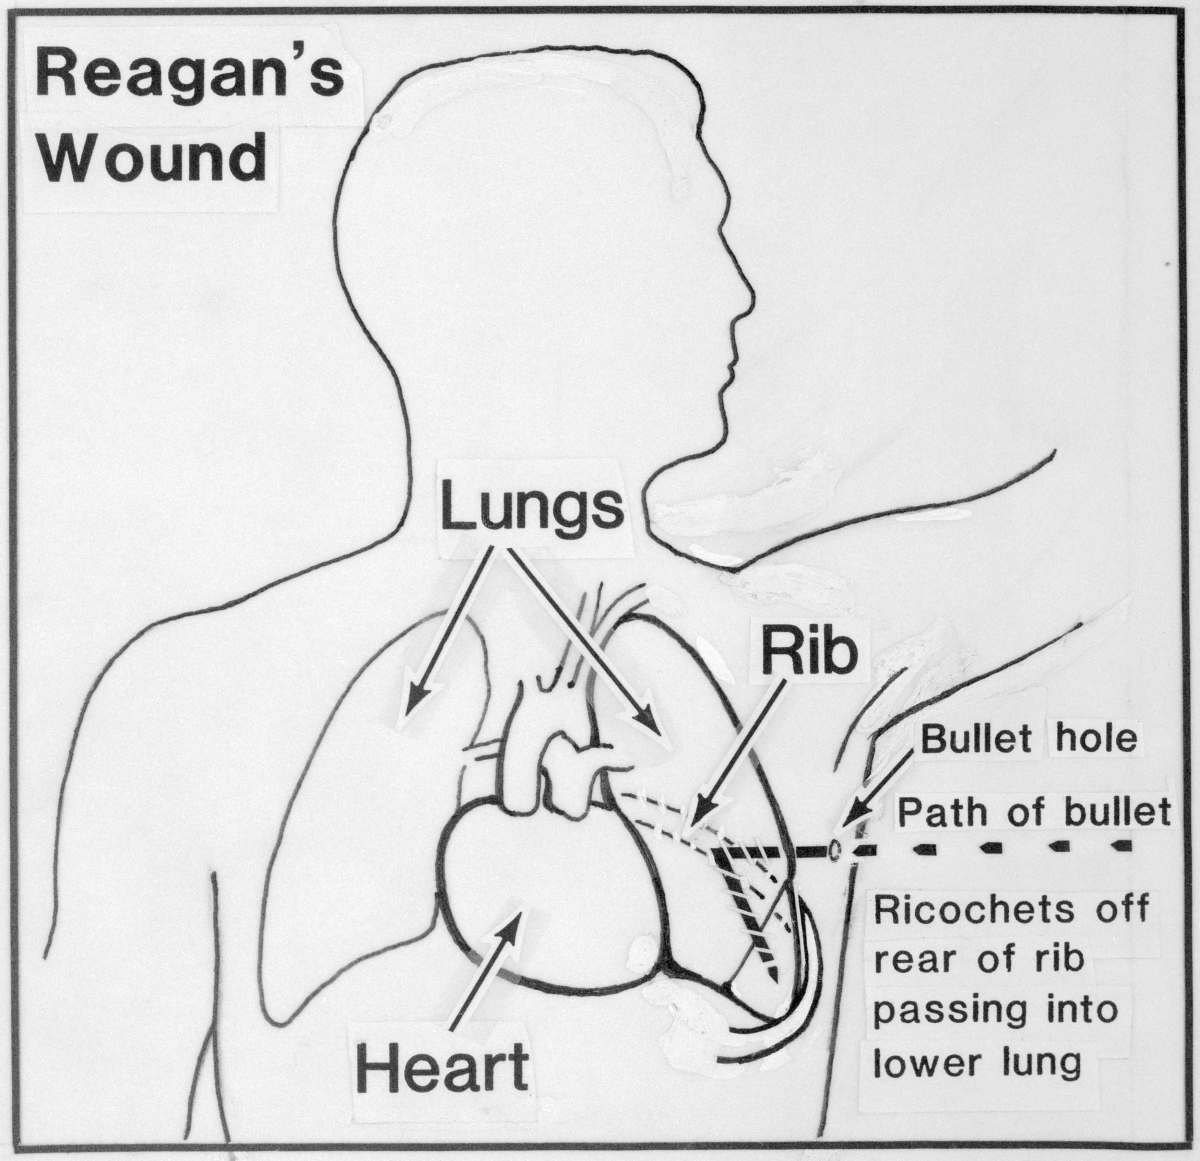 Details of Reagan's gun shot wound after the assassination attempt.